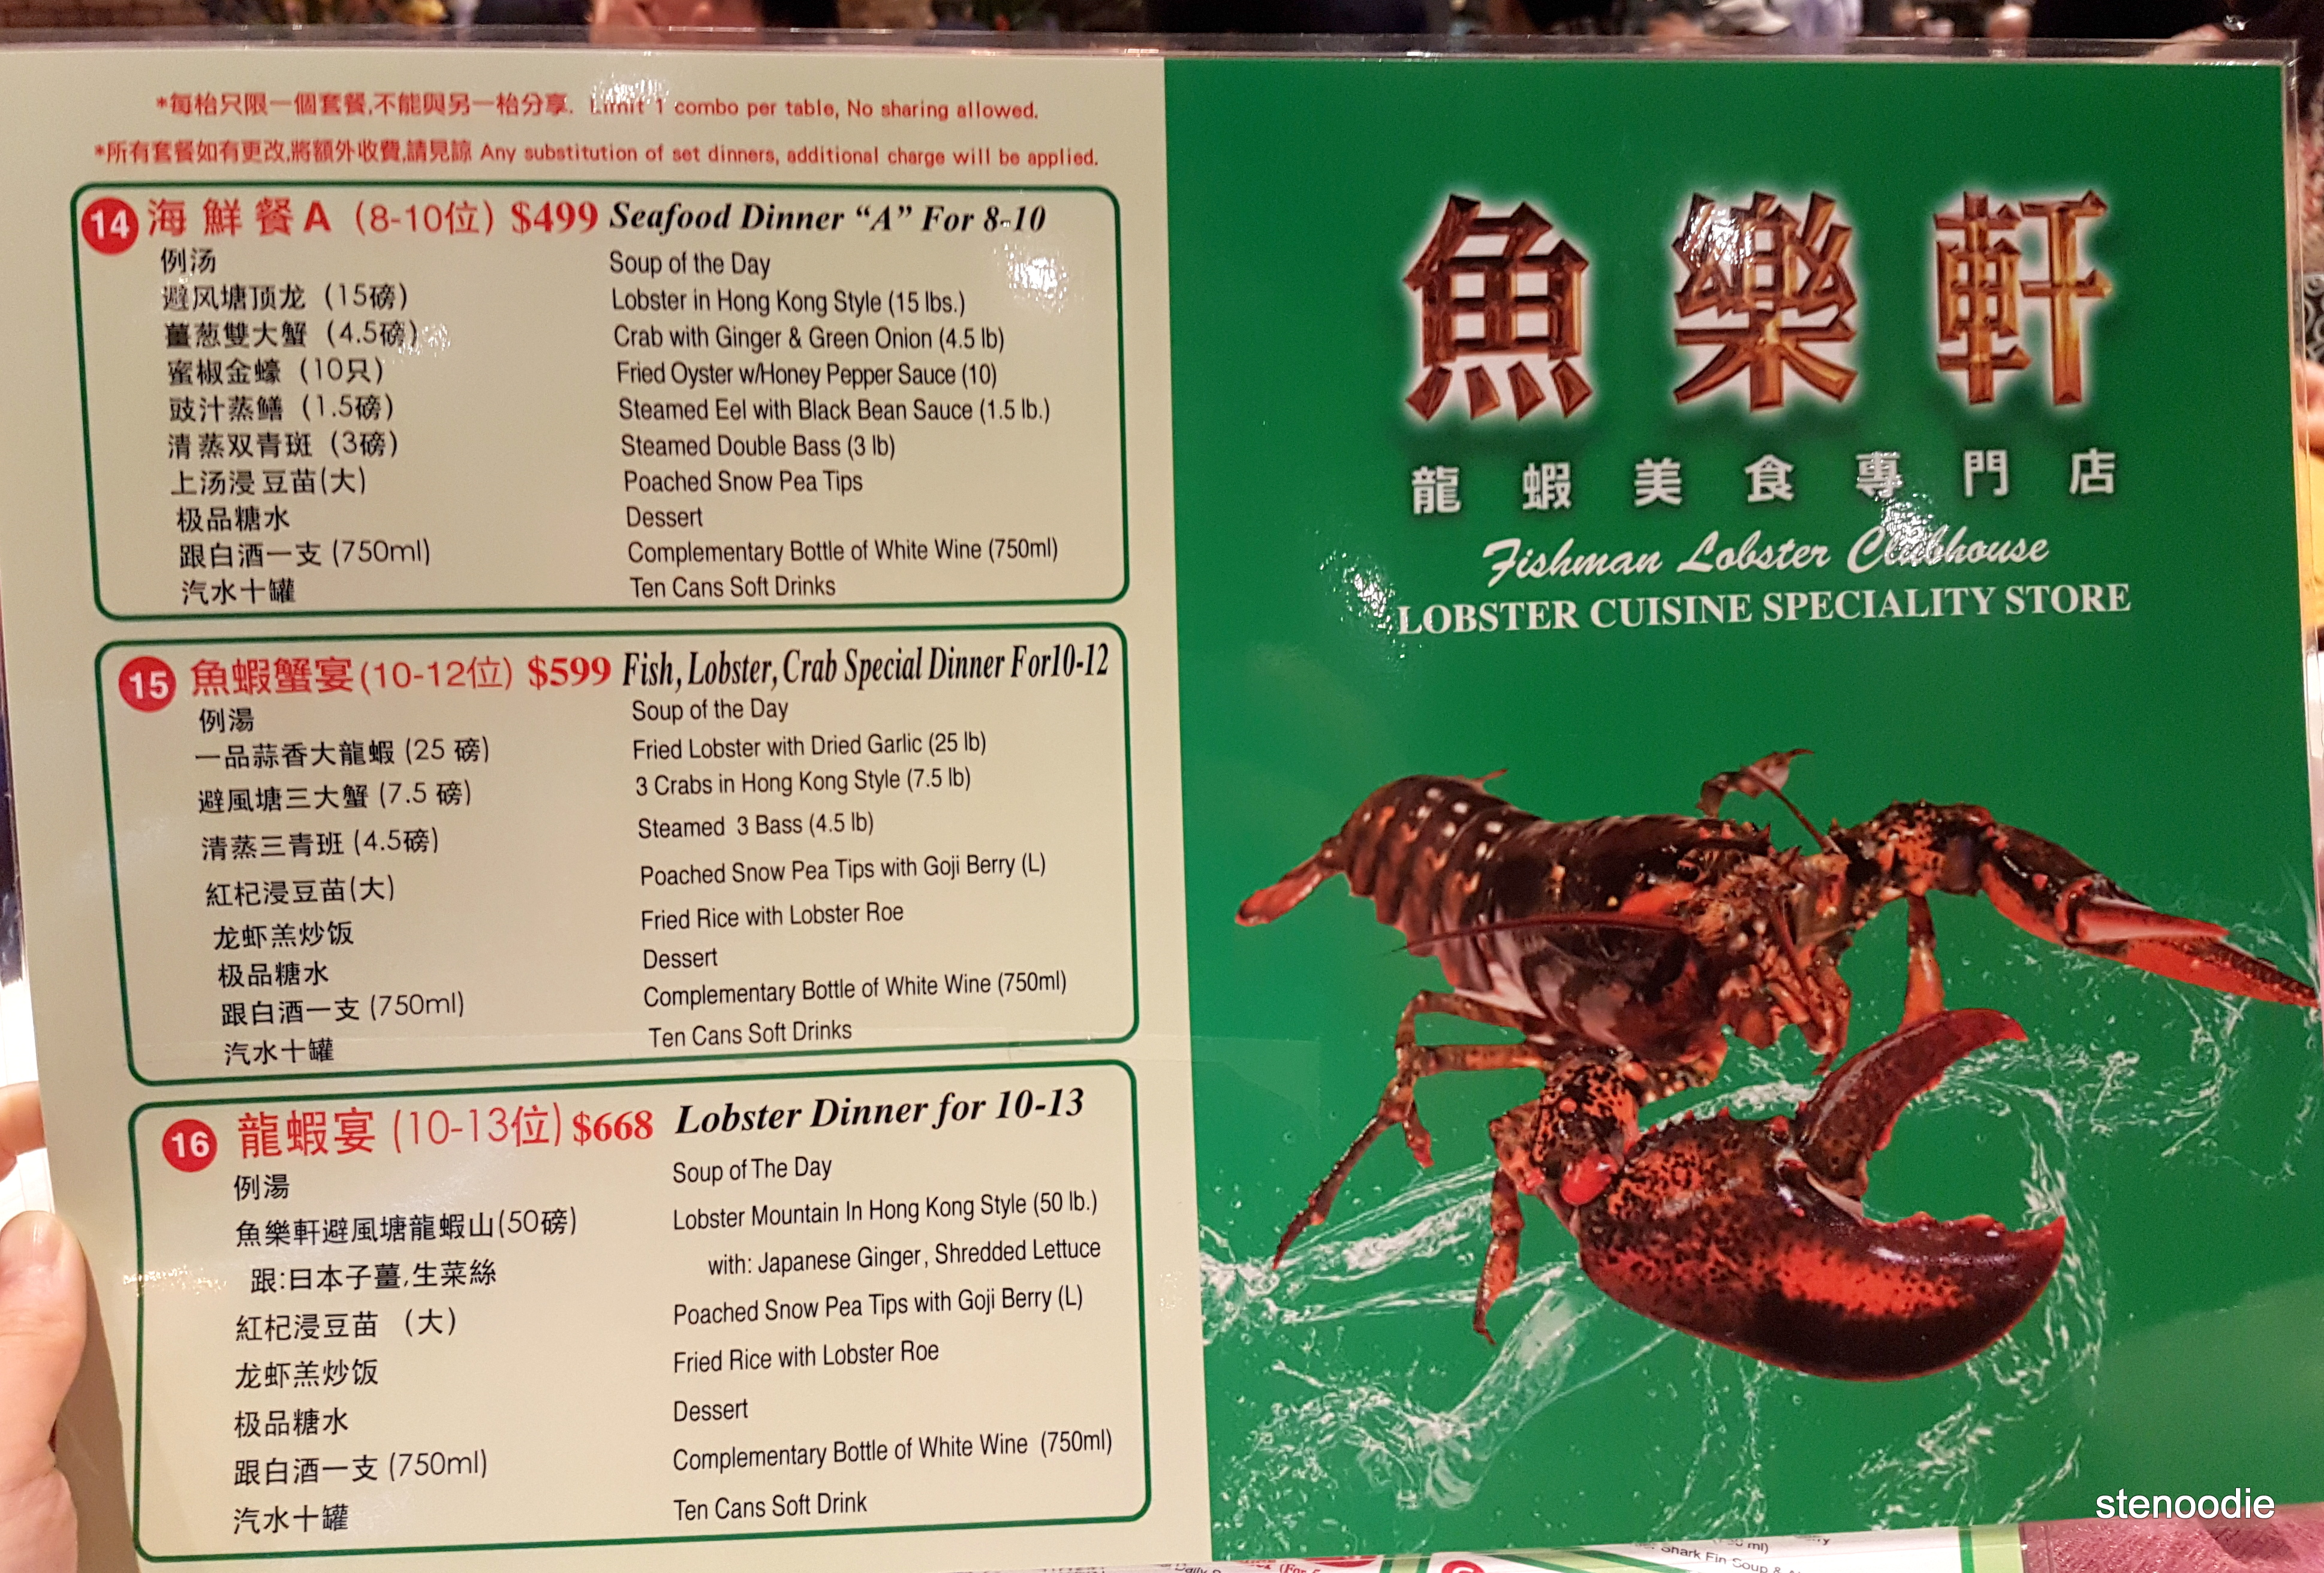 Fishman Lobster Clubhouse Restaurant menu and prices